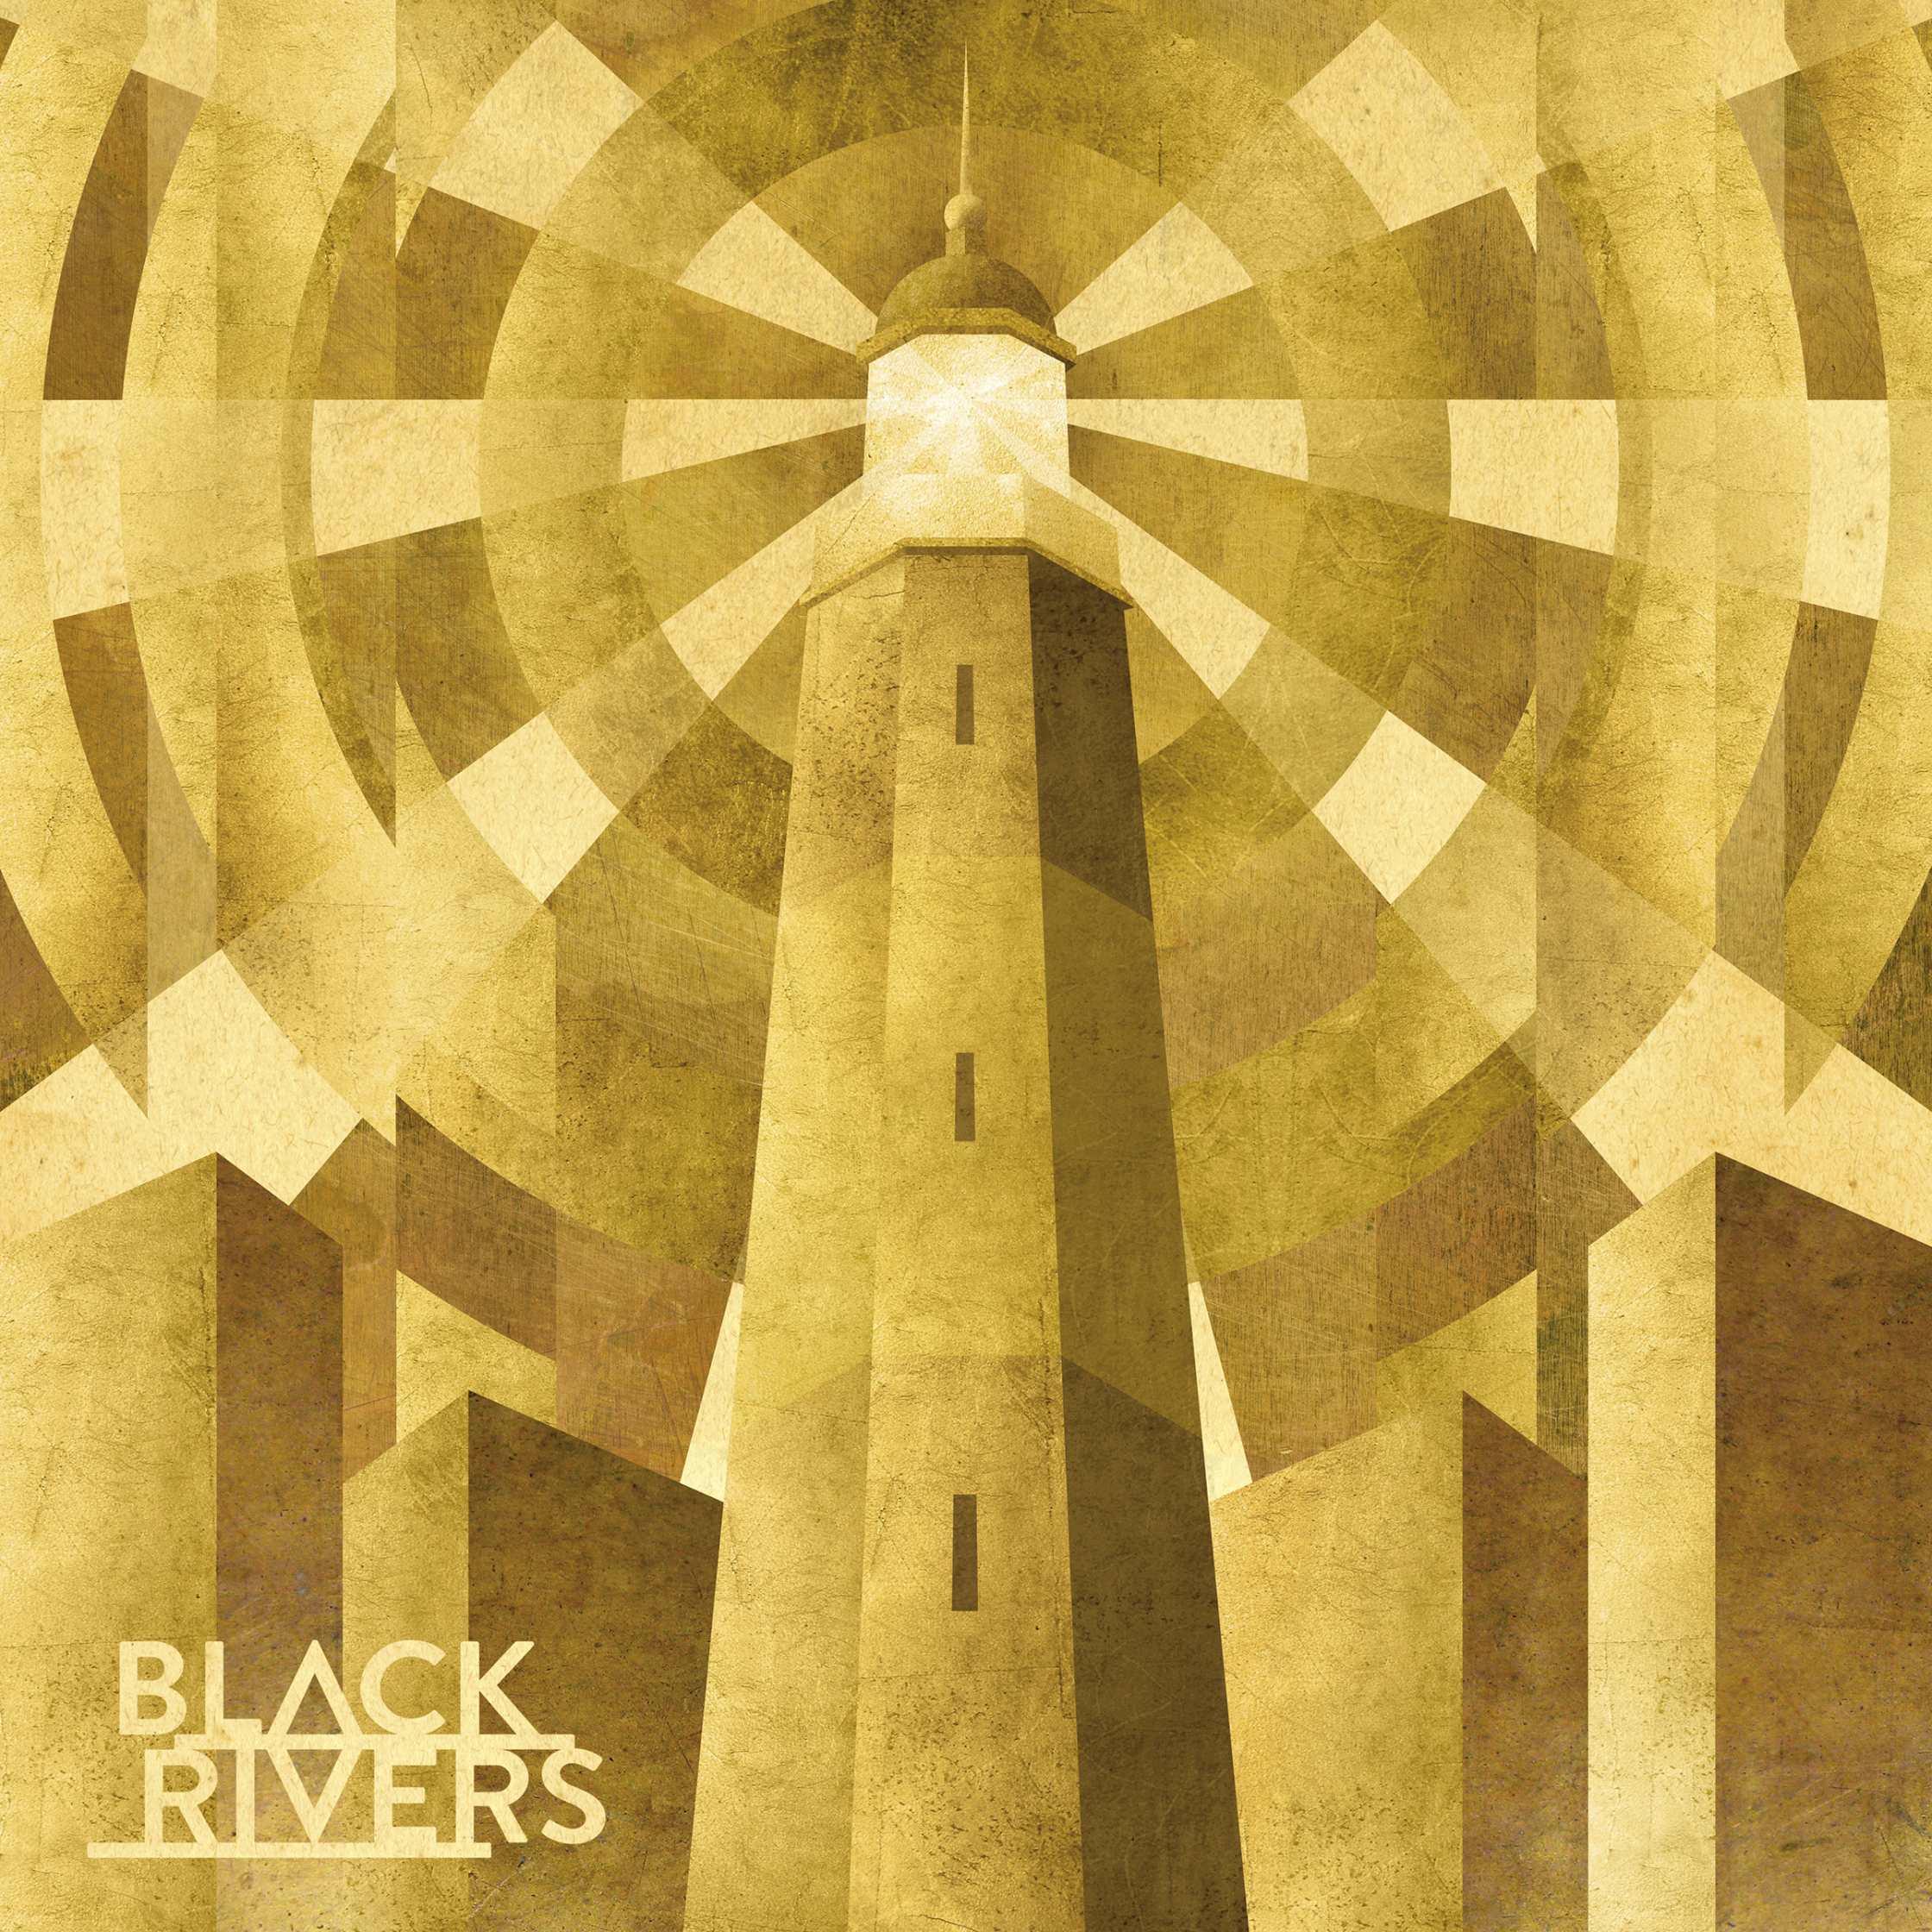 Black River Album Cover